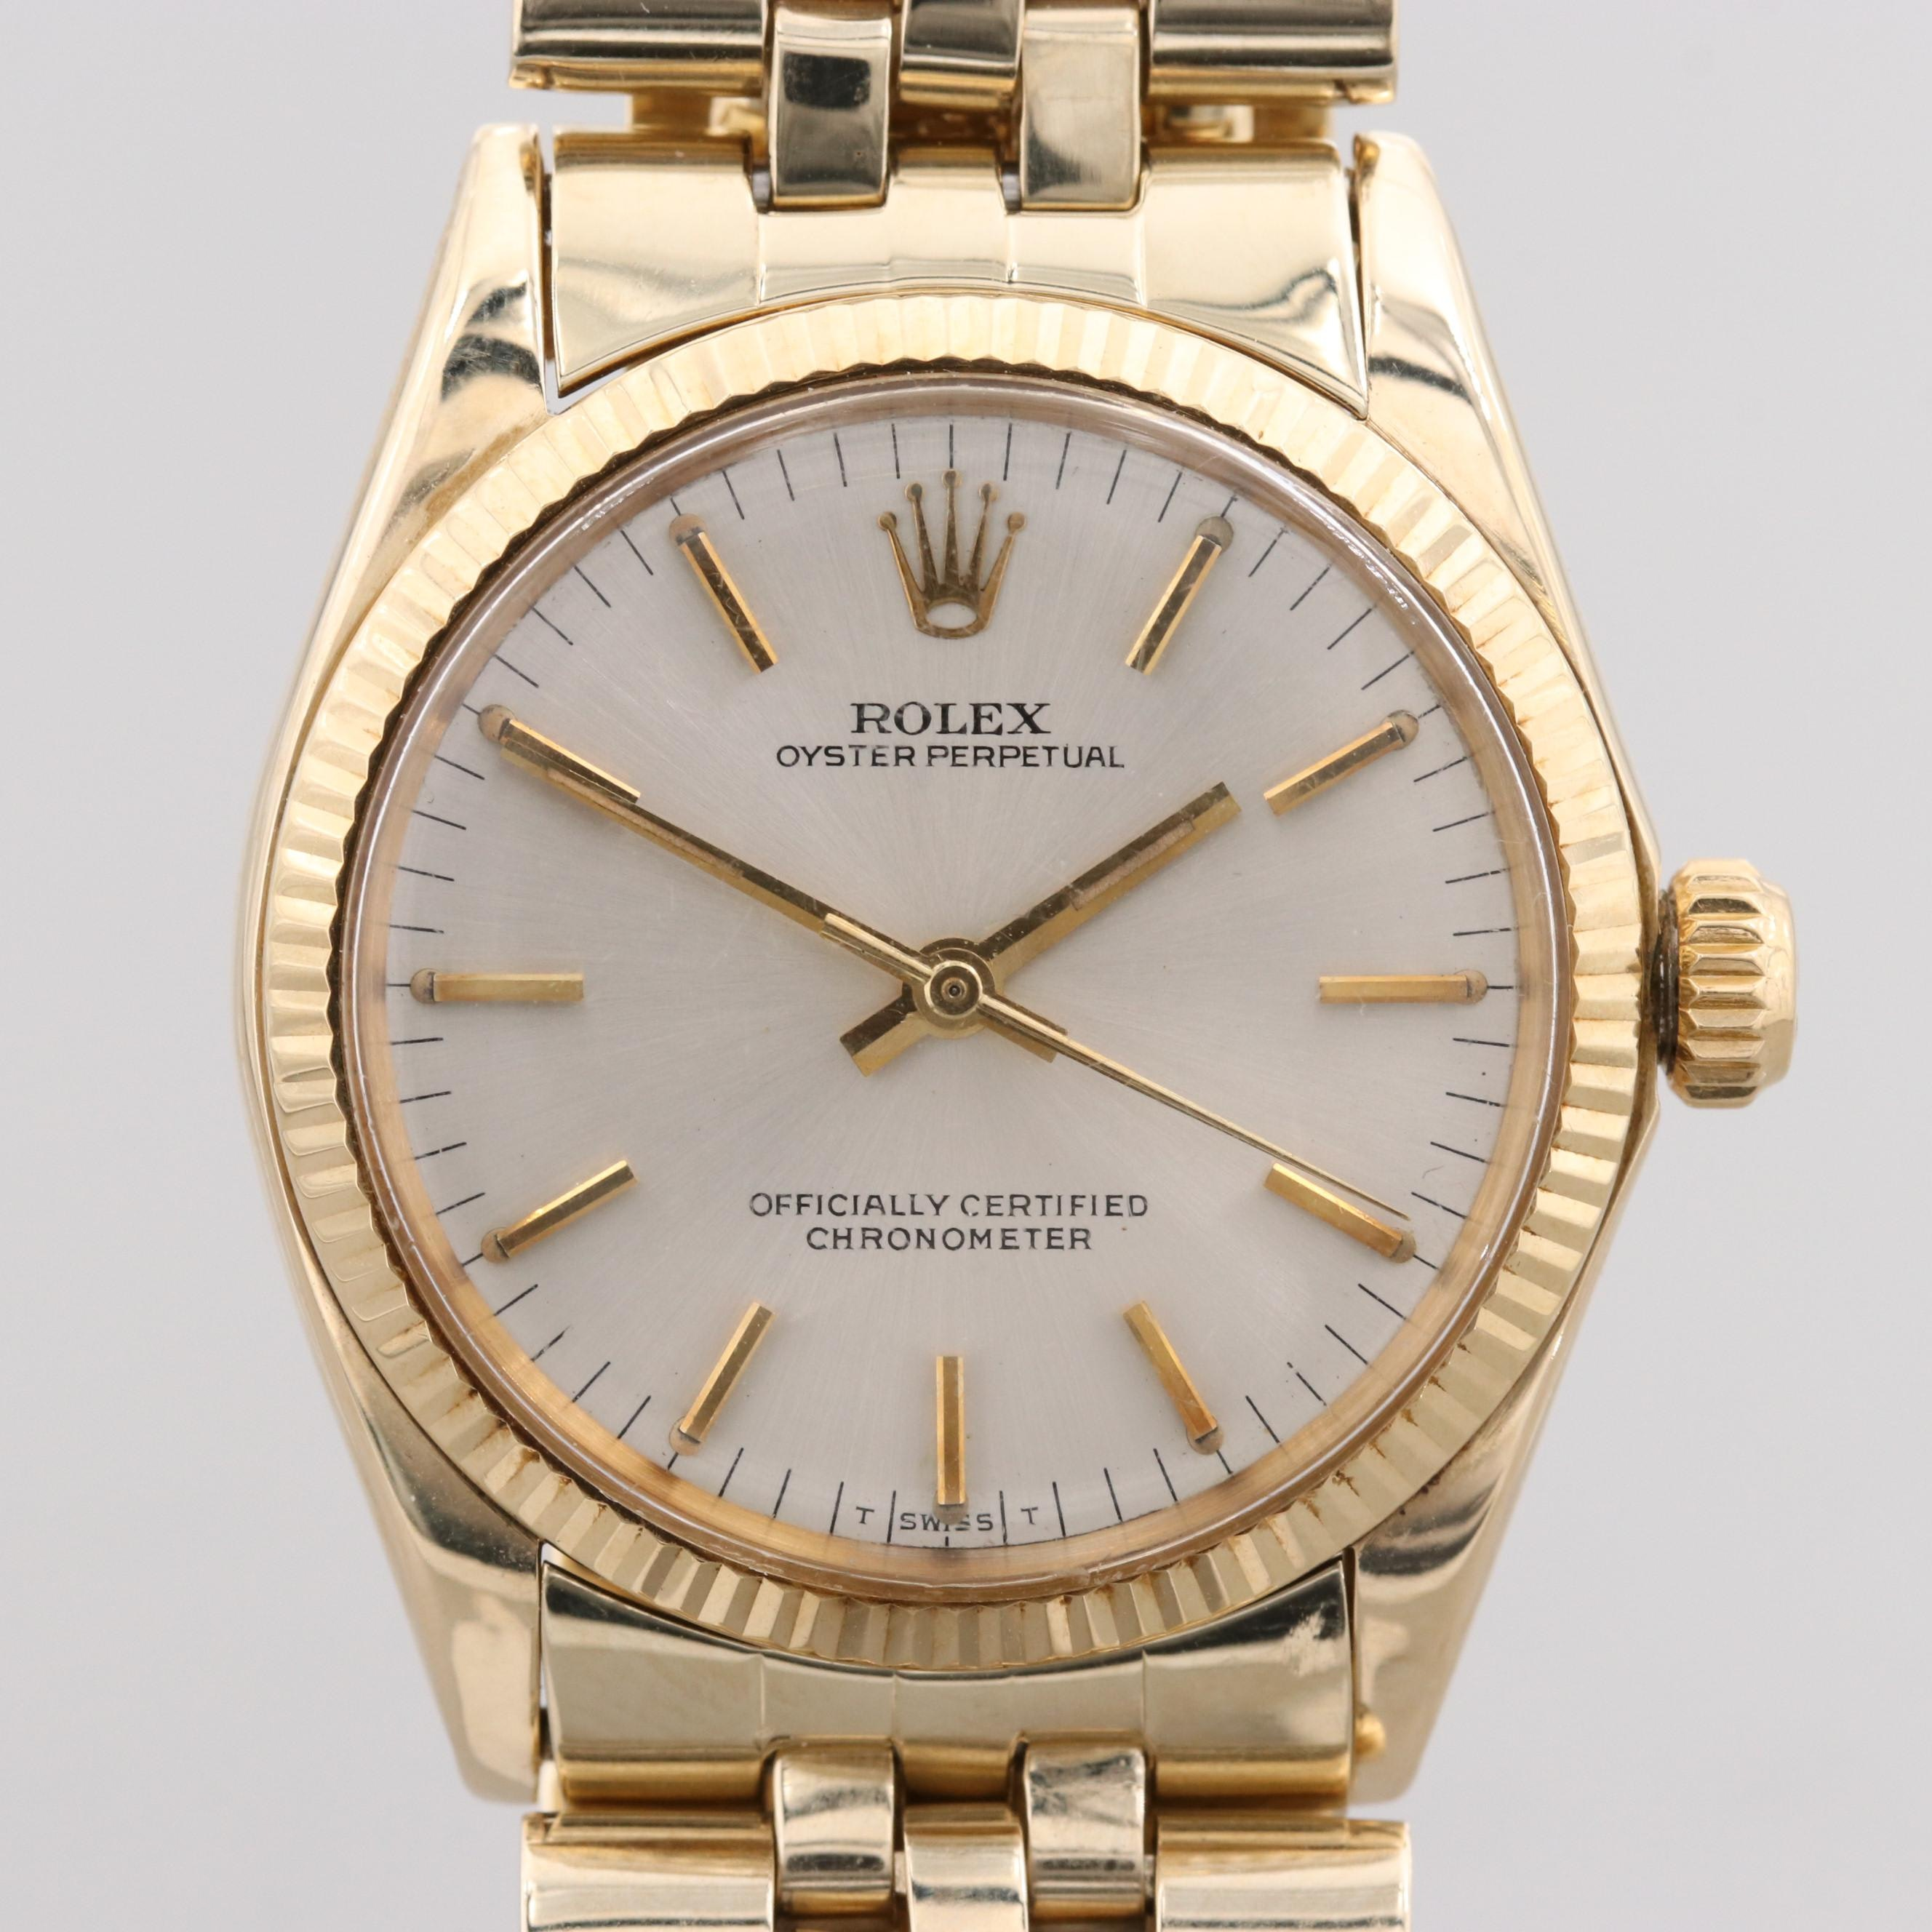 Vintage Rolex Oyster Perpetual 14K Yellow Gold Wristwatch, 1969